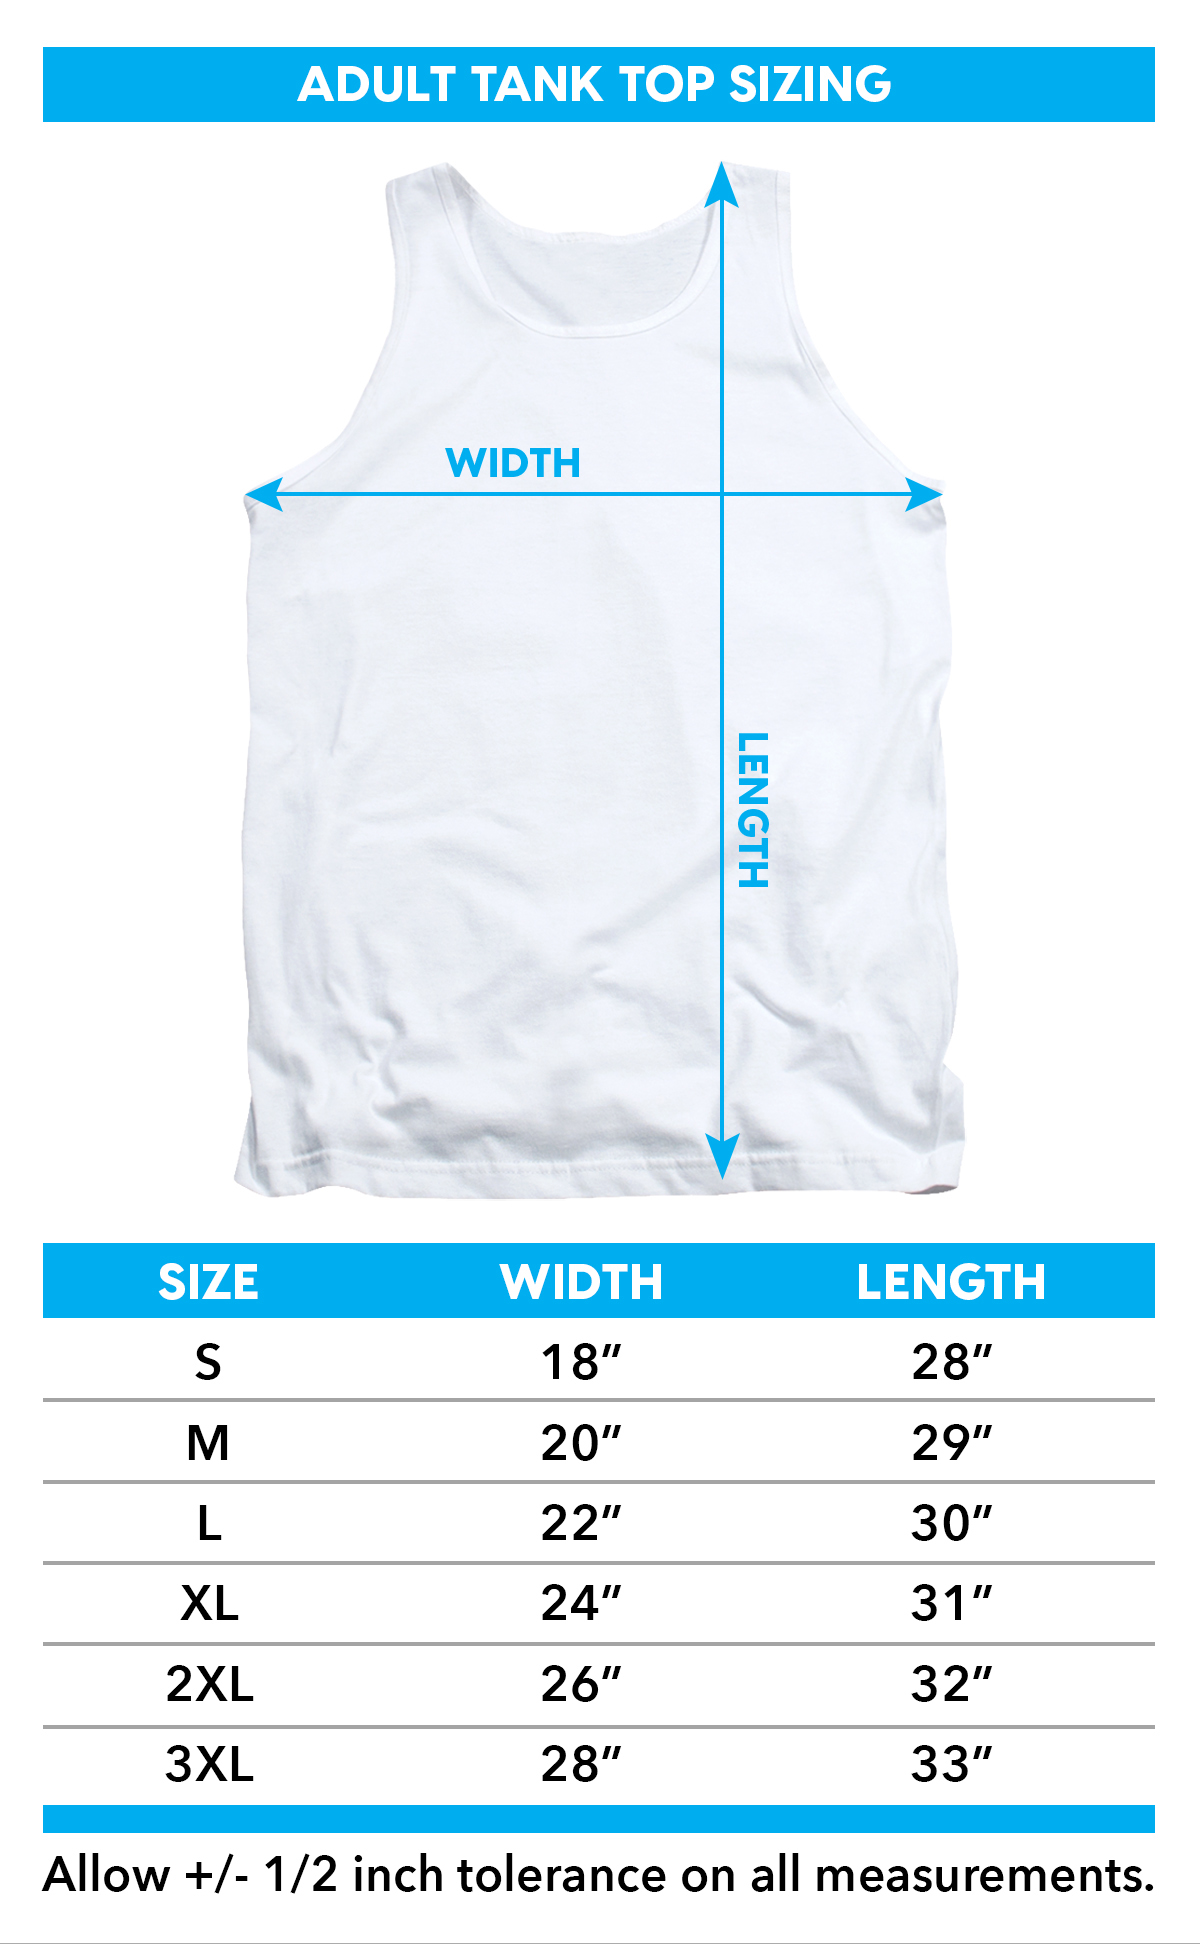 Sizing chart for The Hobbit Desolation of Smaug Tail Claws Teeth Tank Top TRV-HOB2034-TK